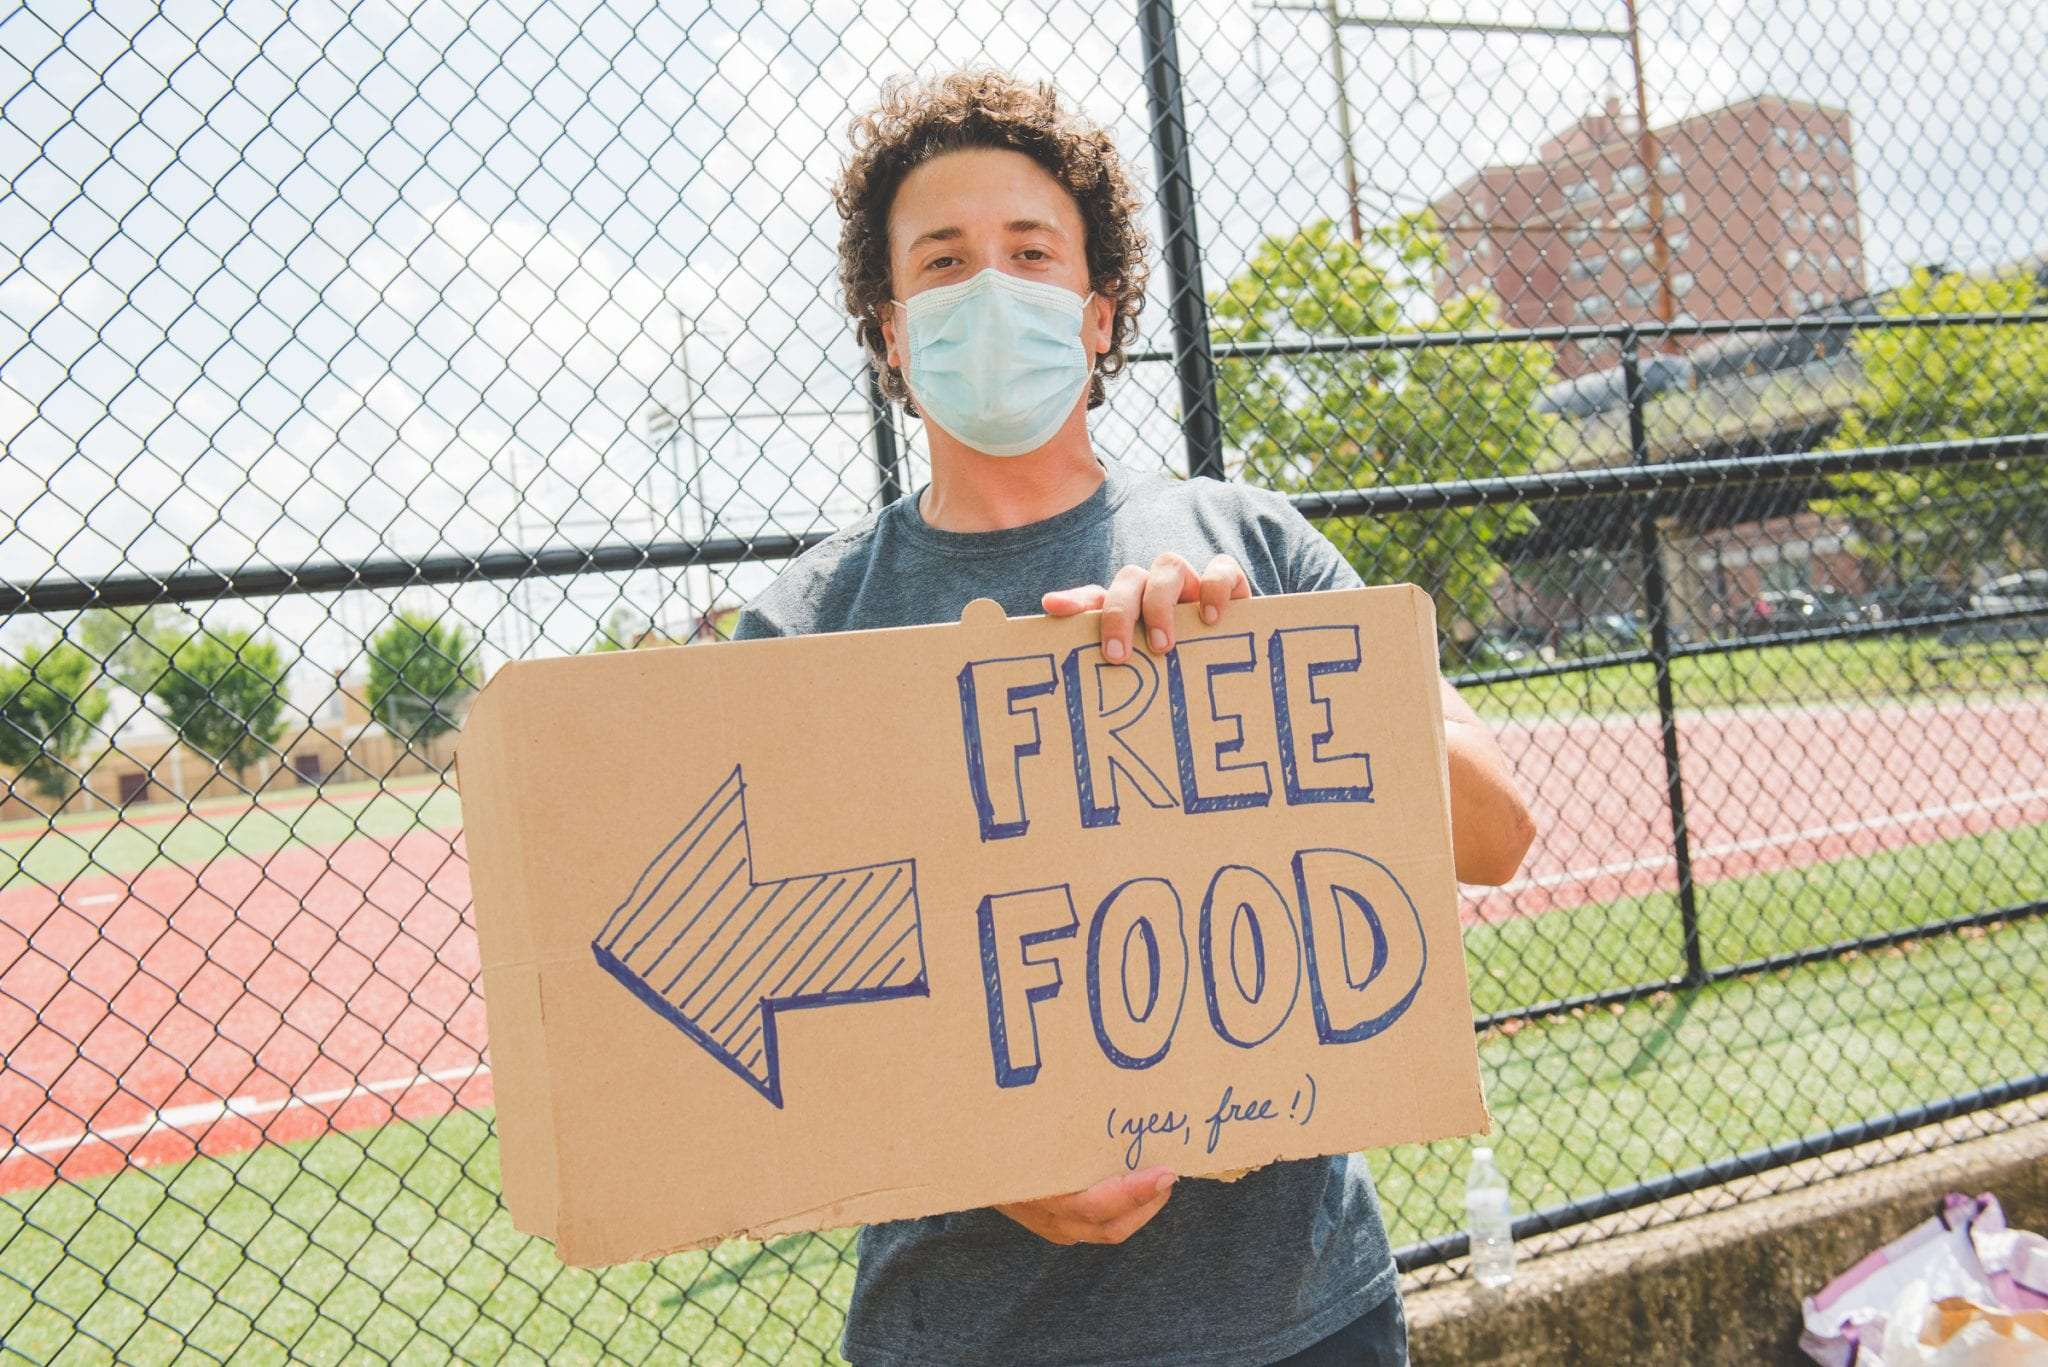 Free food for everyone in philadelphia pop up event